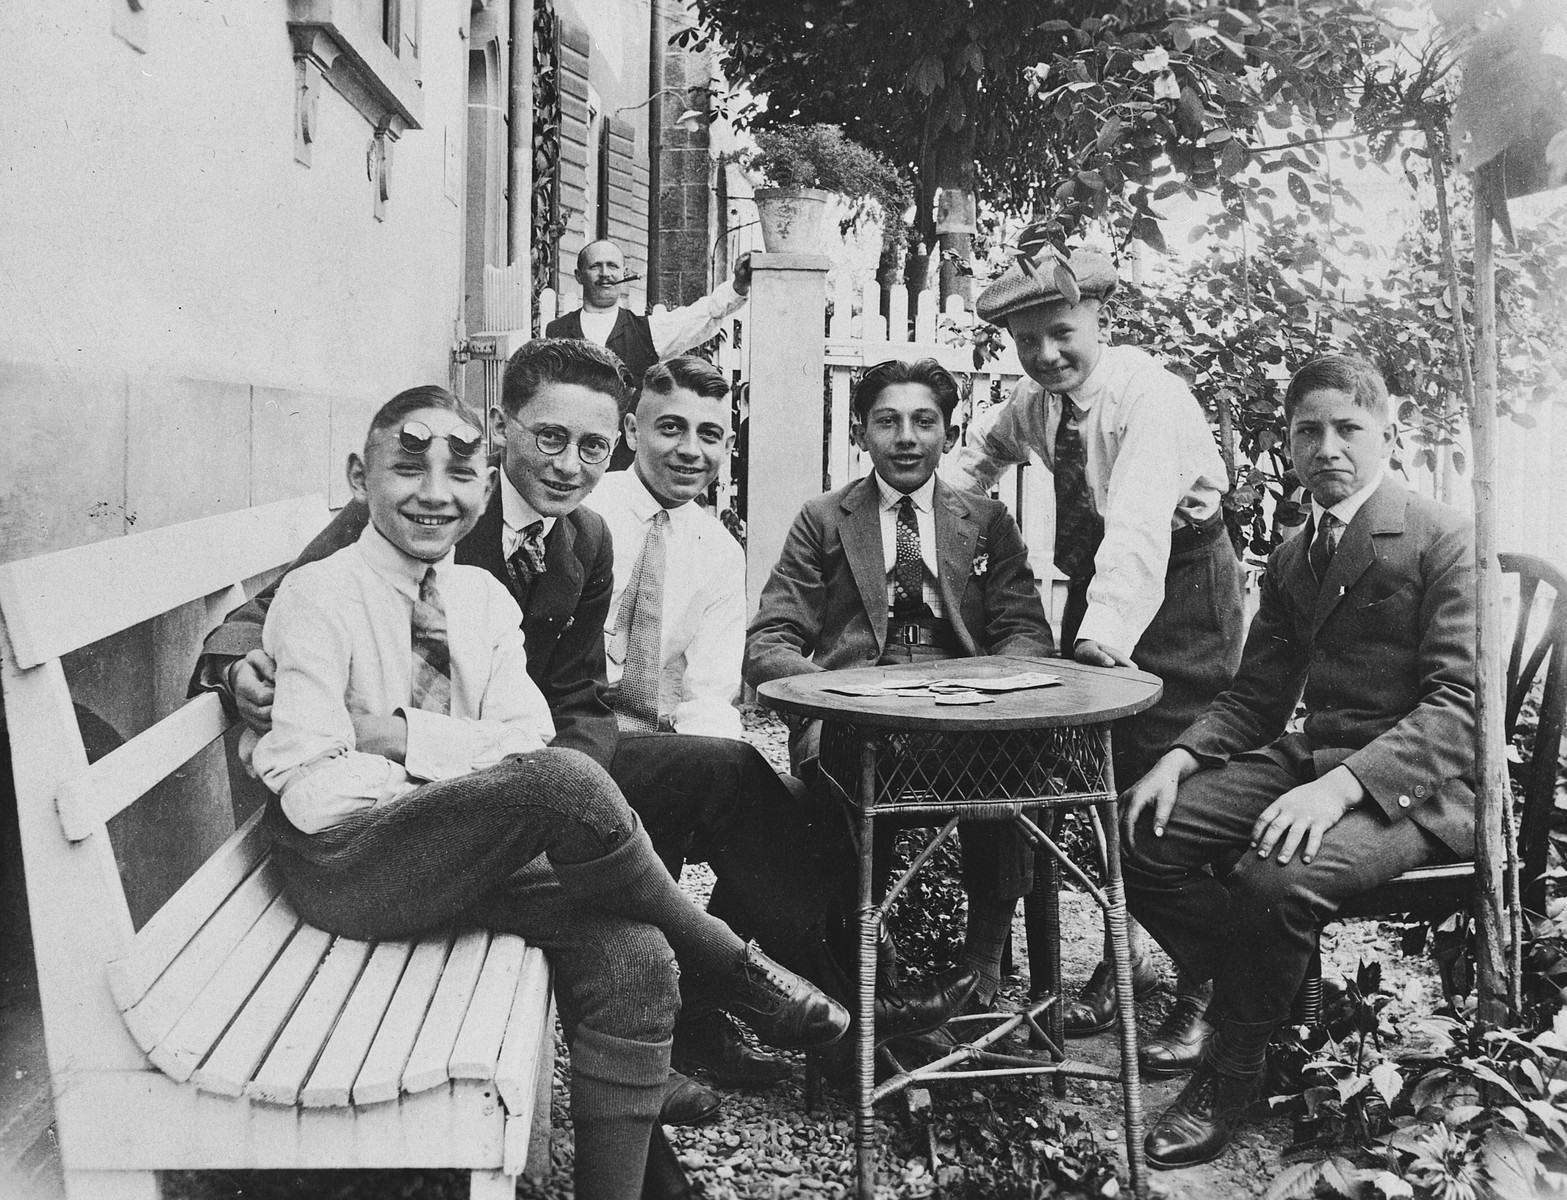 A group of adolescent Jewish friends gather around a small outdoor table in a backyard garden in Breisach.  Pictured from left to right are Hans Frank, Hans Wurmser, Heinz Bähr, unknown and  Luli Weil.  Emil Weil is in the back.  Emil Weil, who had owned a liquor store, perished in Auschwitz in August 1942.